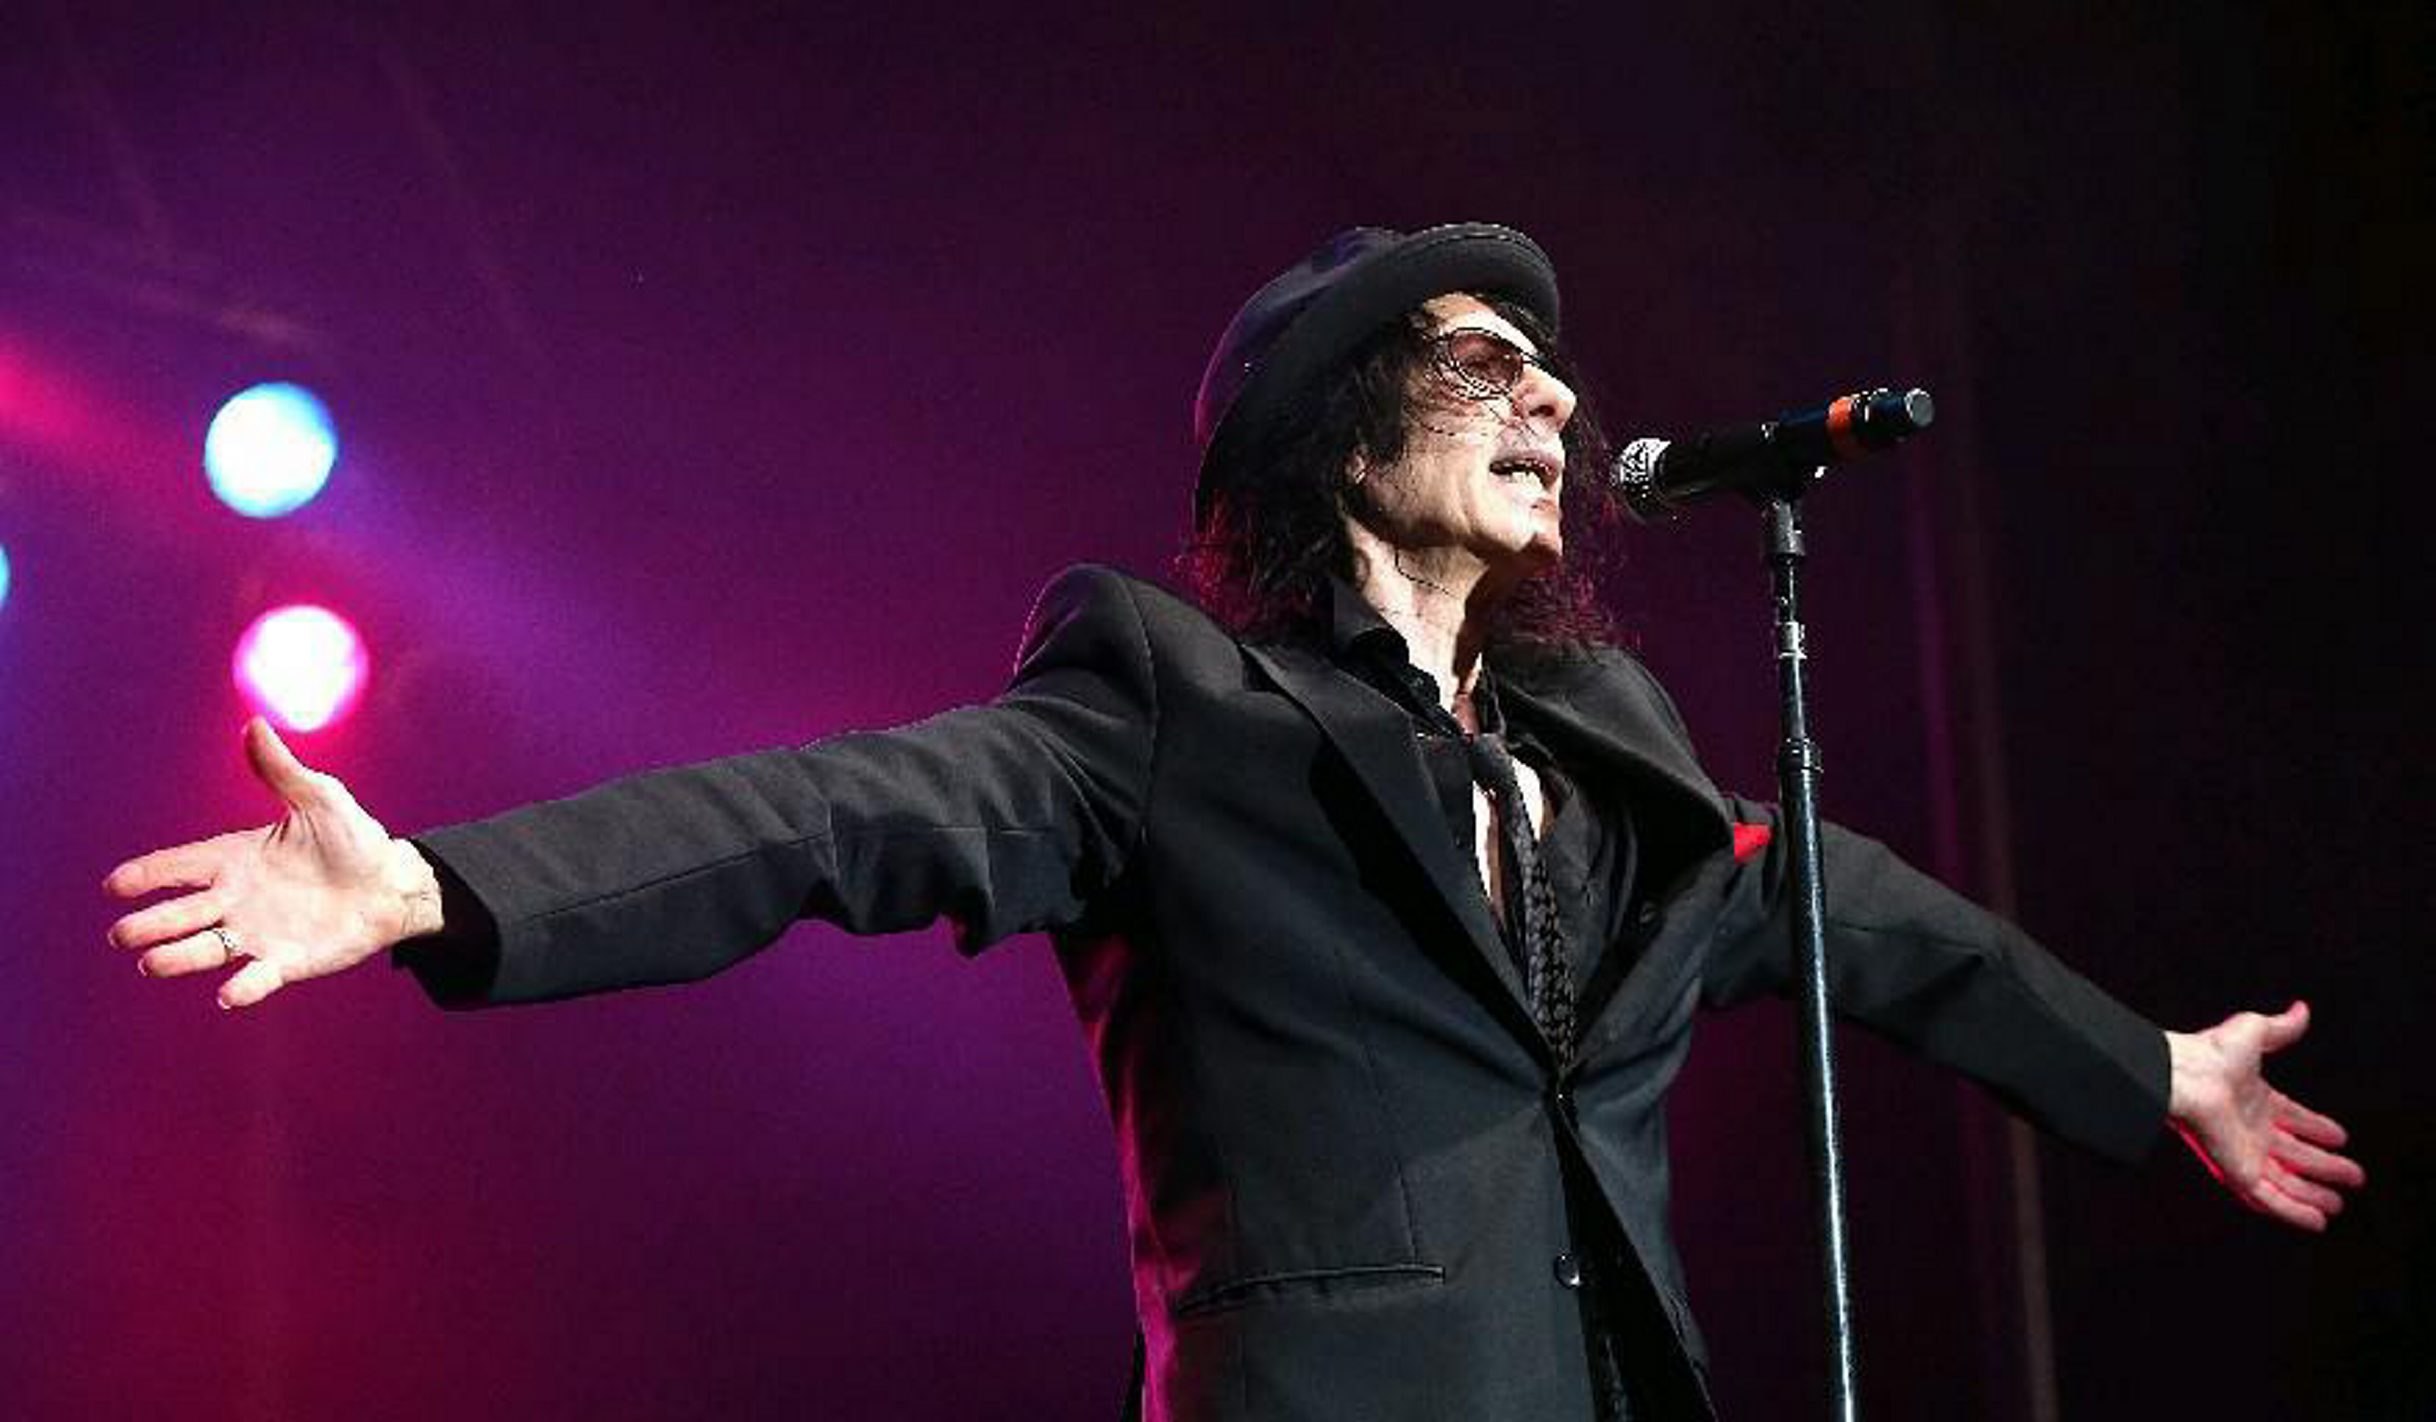 Peter Wolf and the J. Geils Band will close out the Artpark Tuesdays in the Park series on Sept. 8. (Robert Kirkham/News file photo)